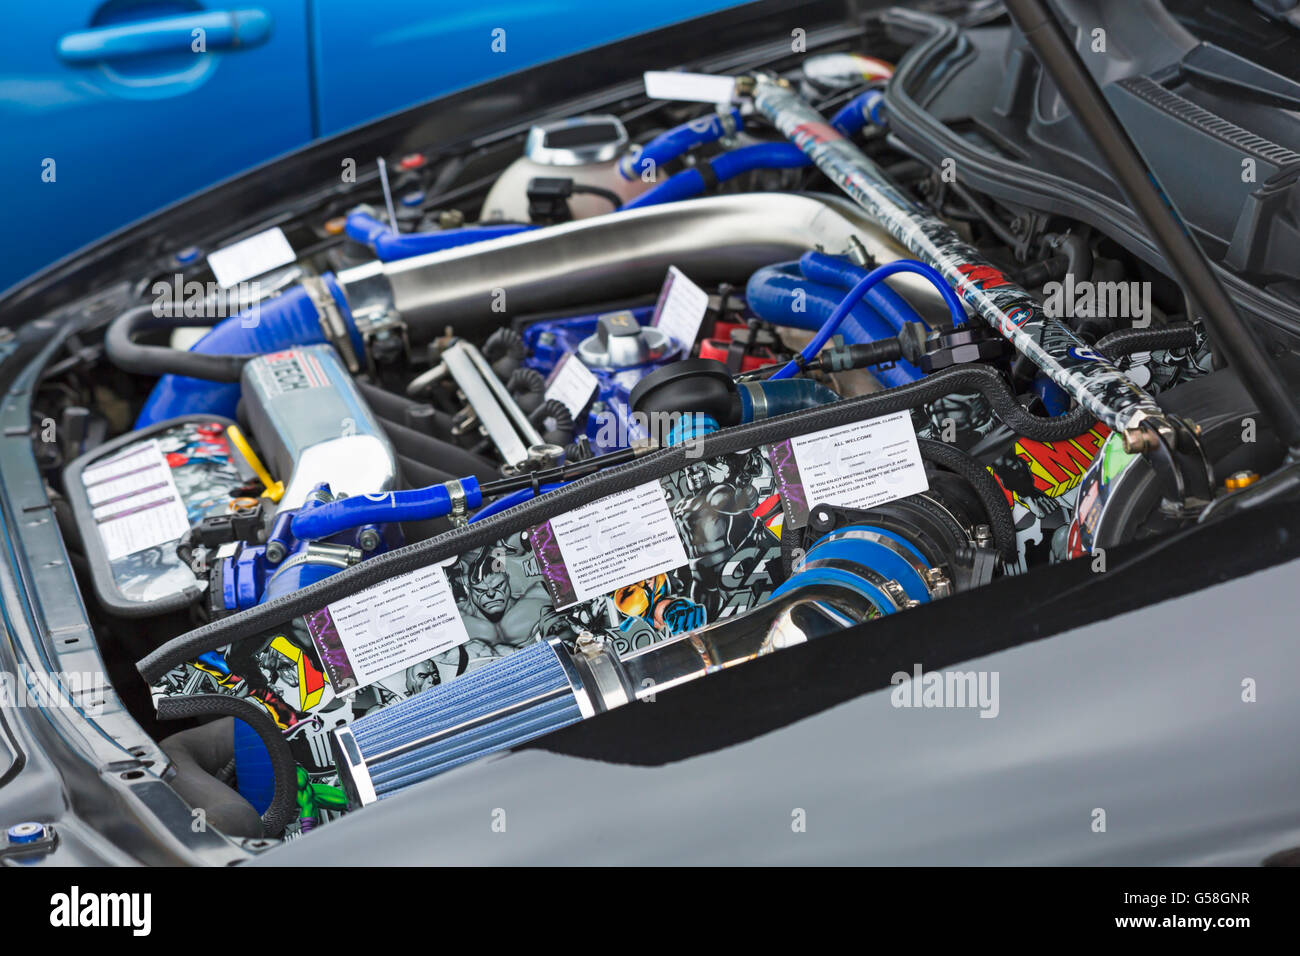 Bonnet of car raised to show engine with information leaflets on ...